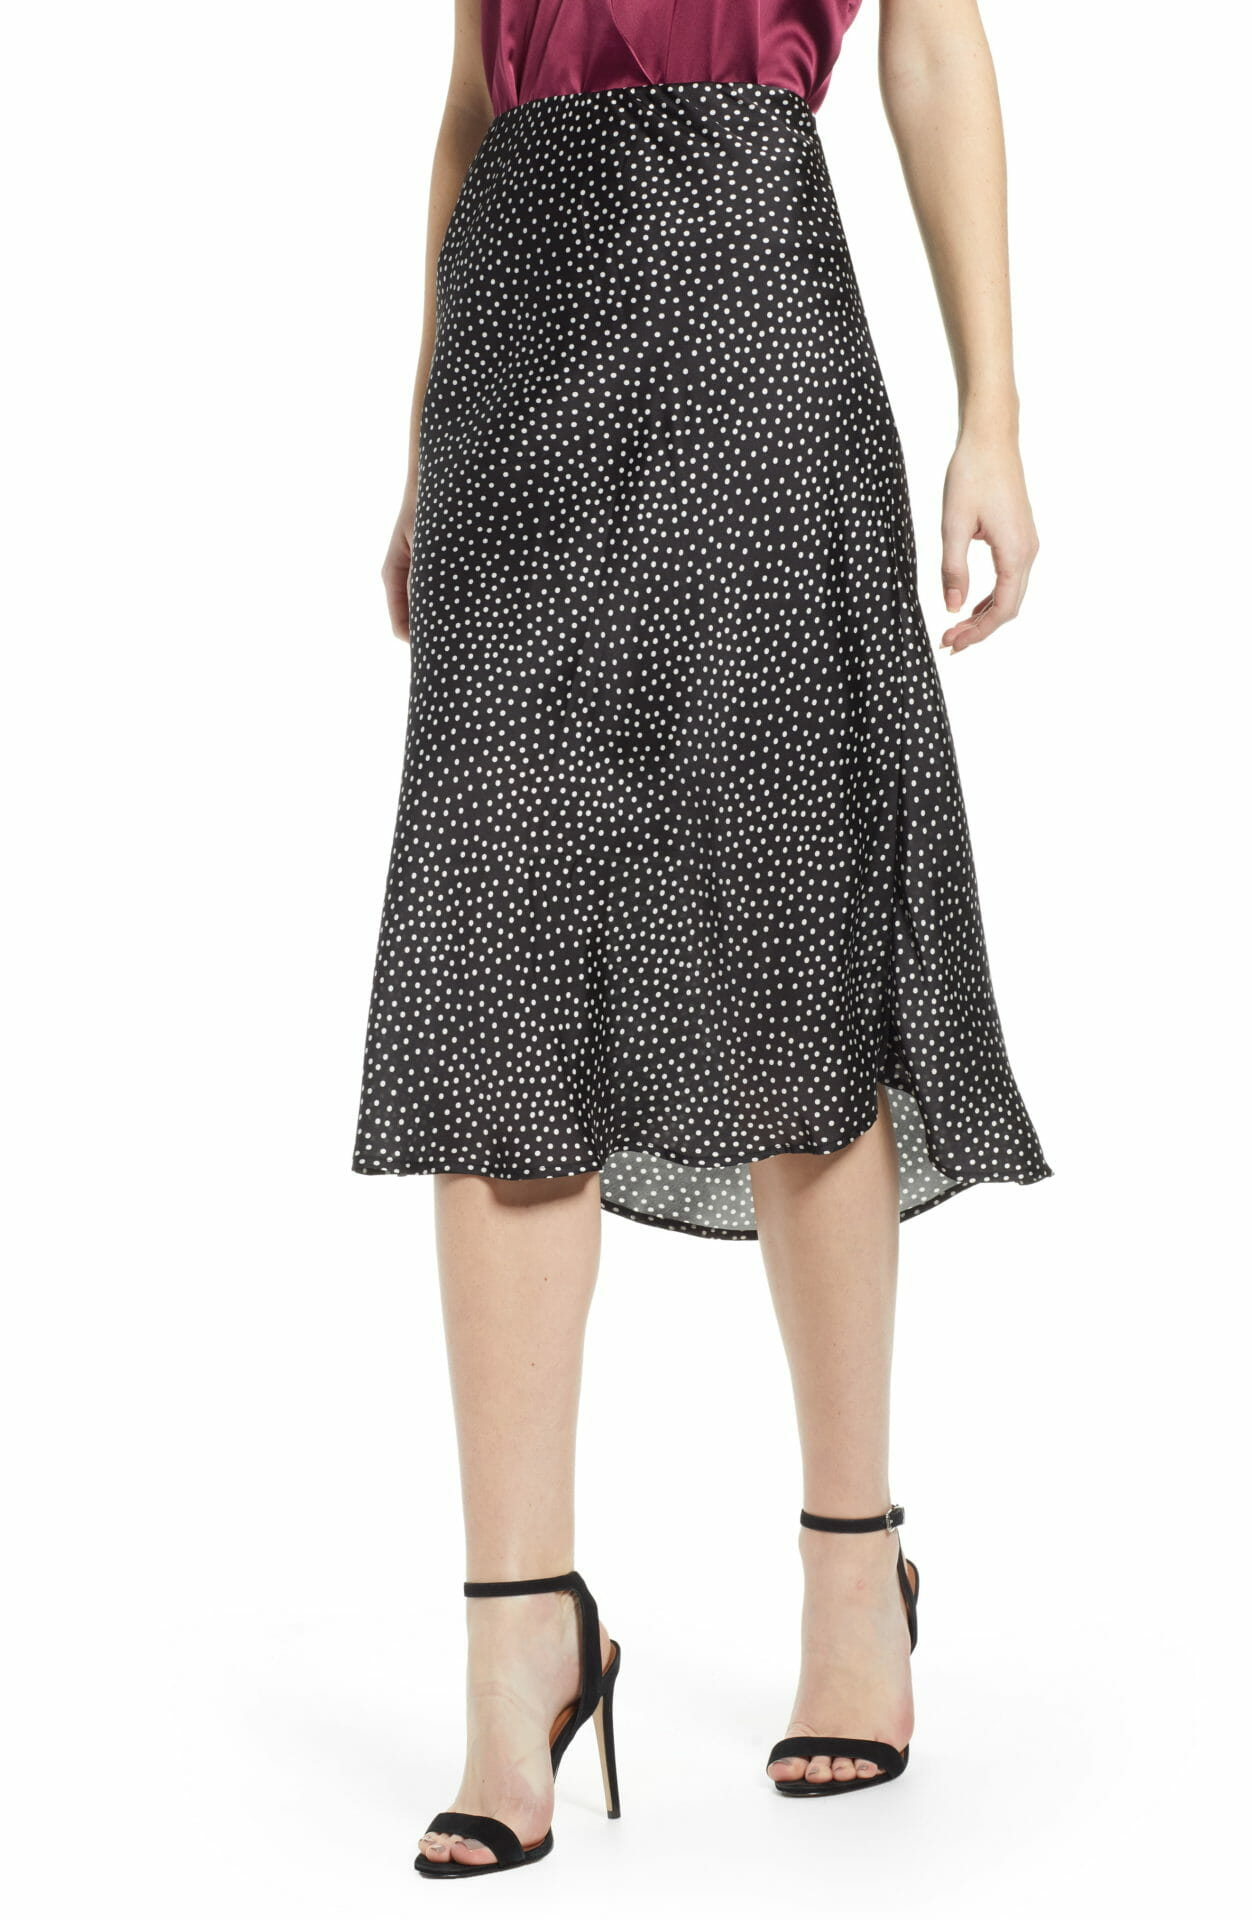 LEITH Satin Midi Skirt, Main, color, BLACK DOT